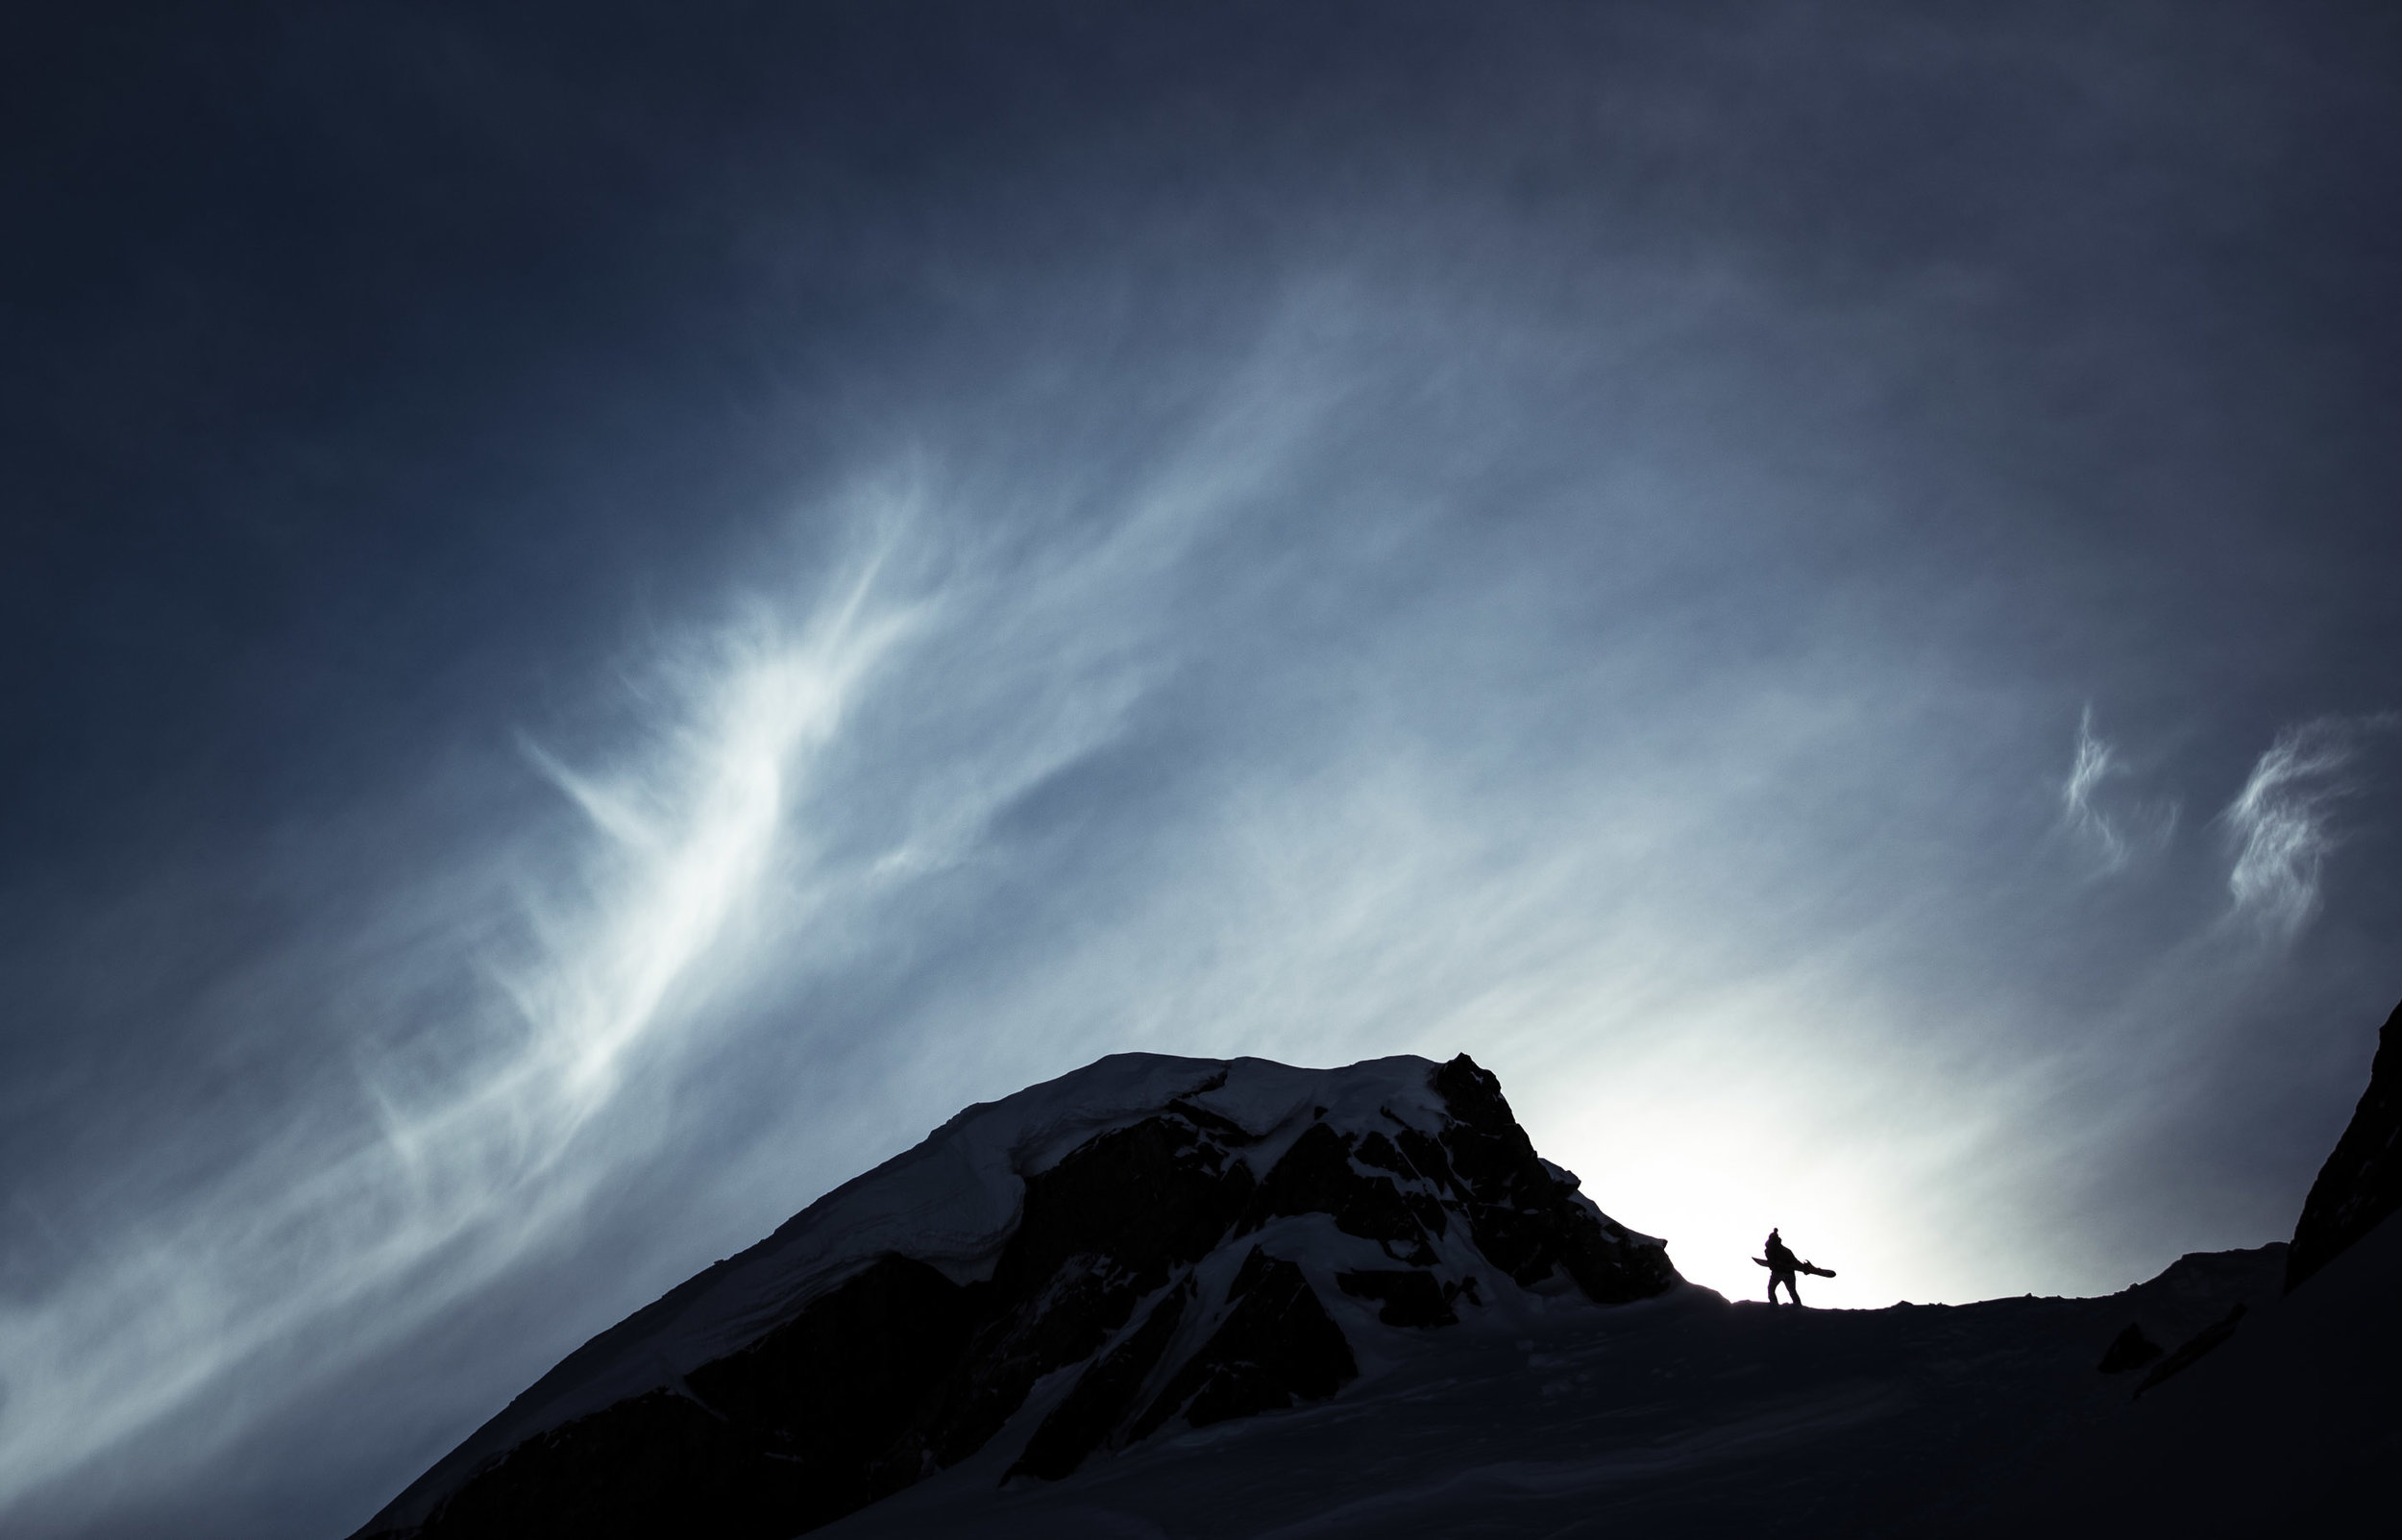 epic silouette mountain life photographer female backass best of award commercial mountain